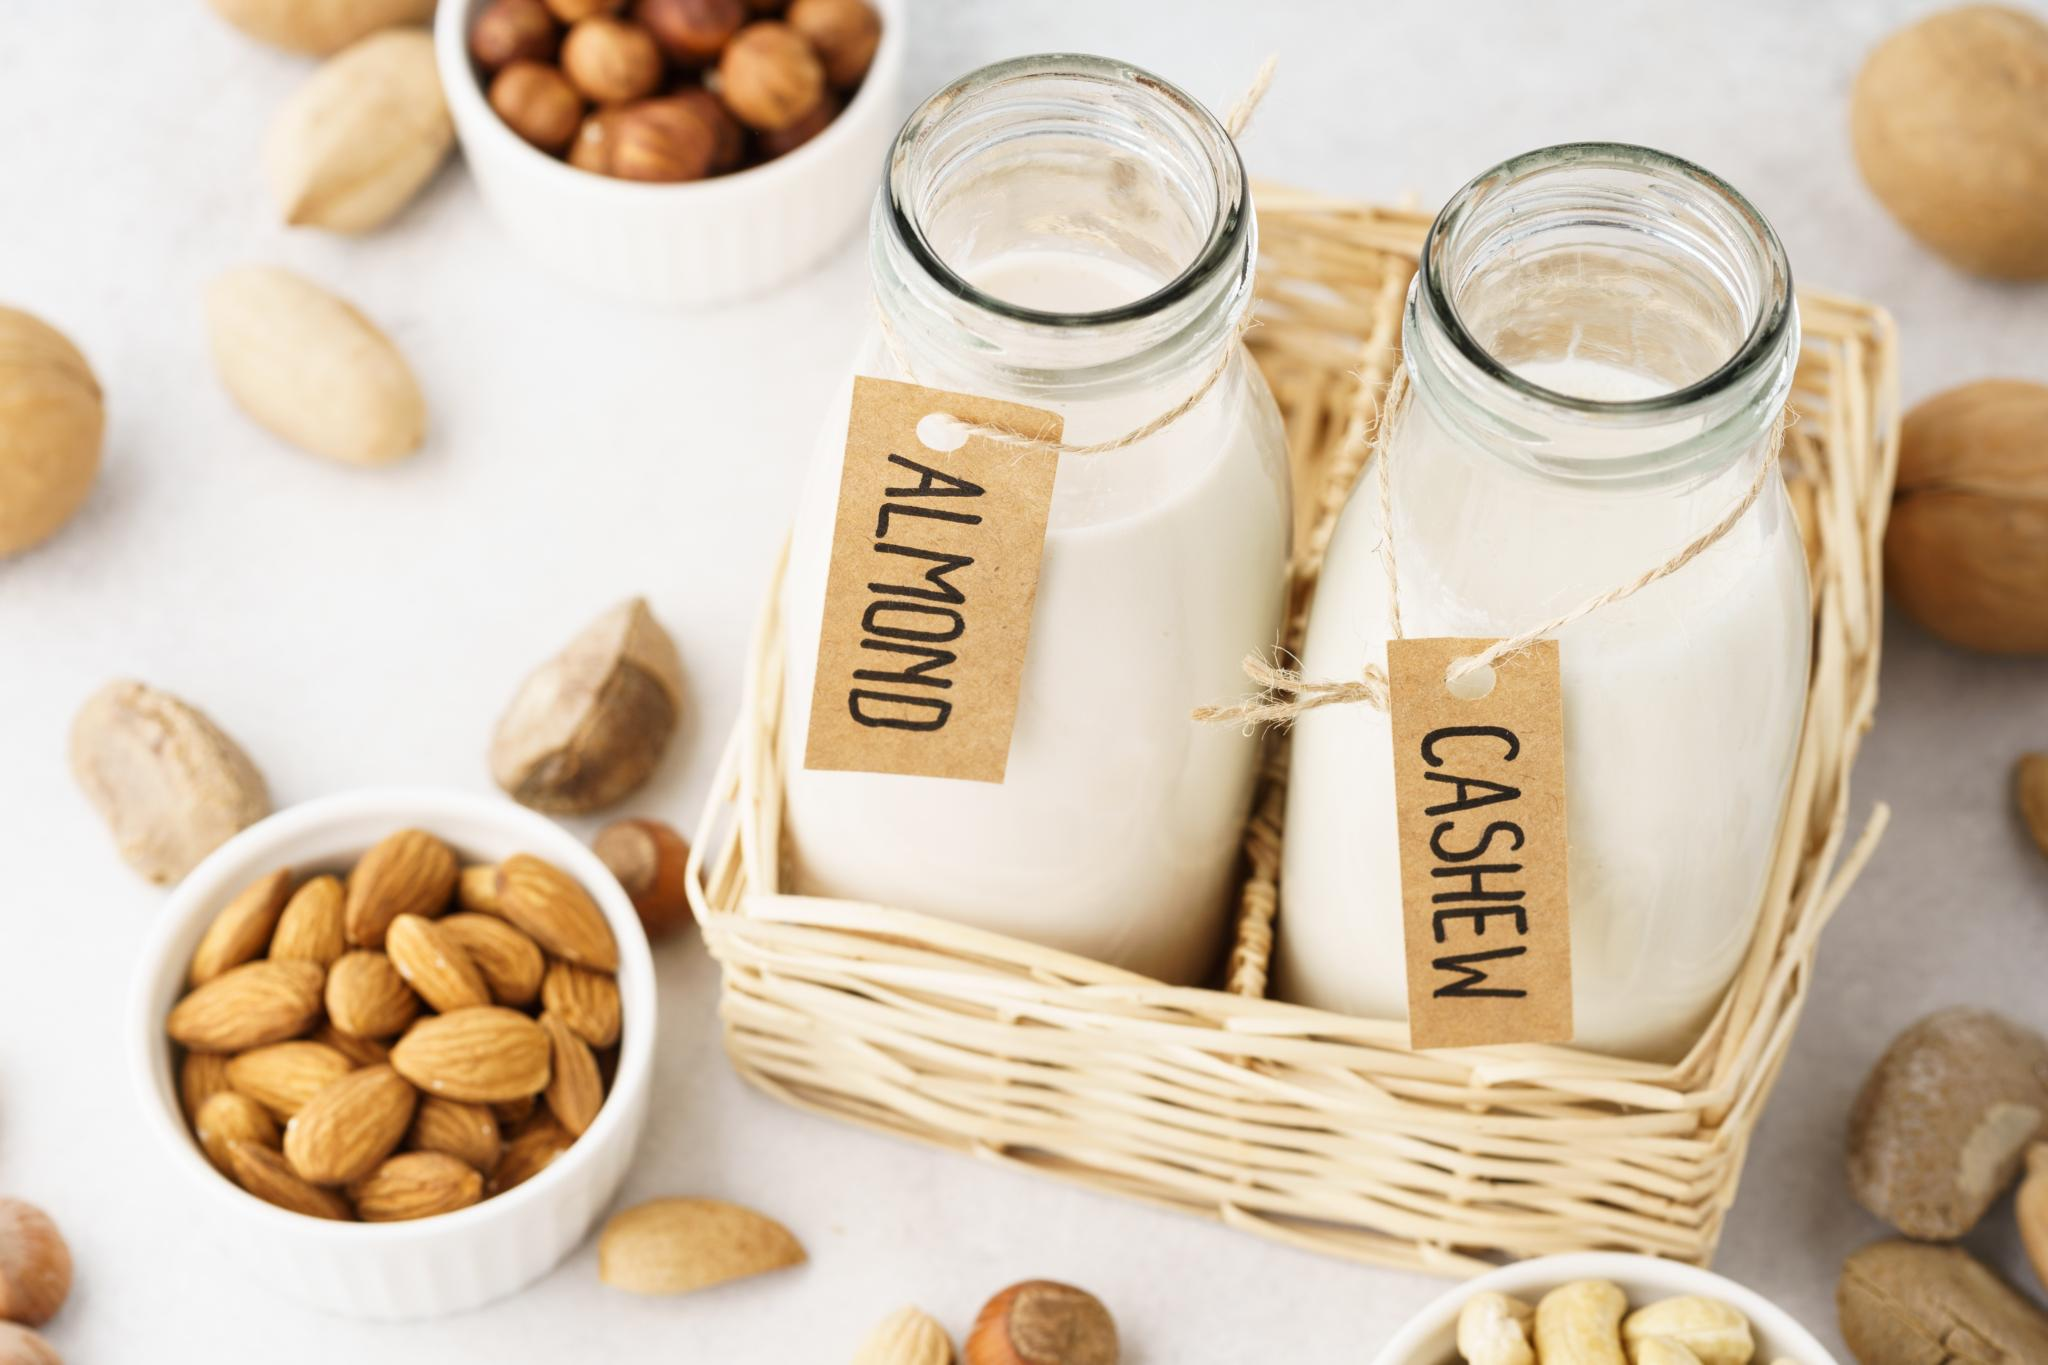 Dairy Free Milk: The 4 Things You Need to Know